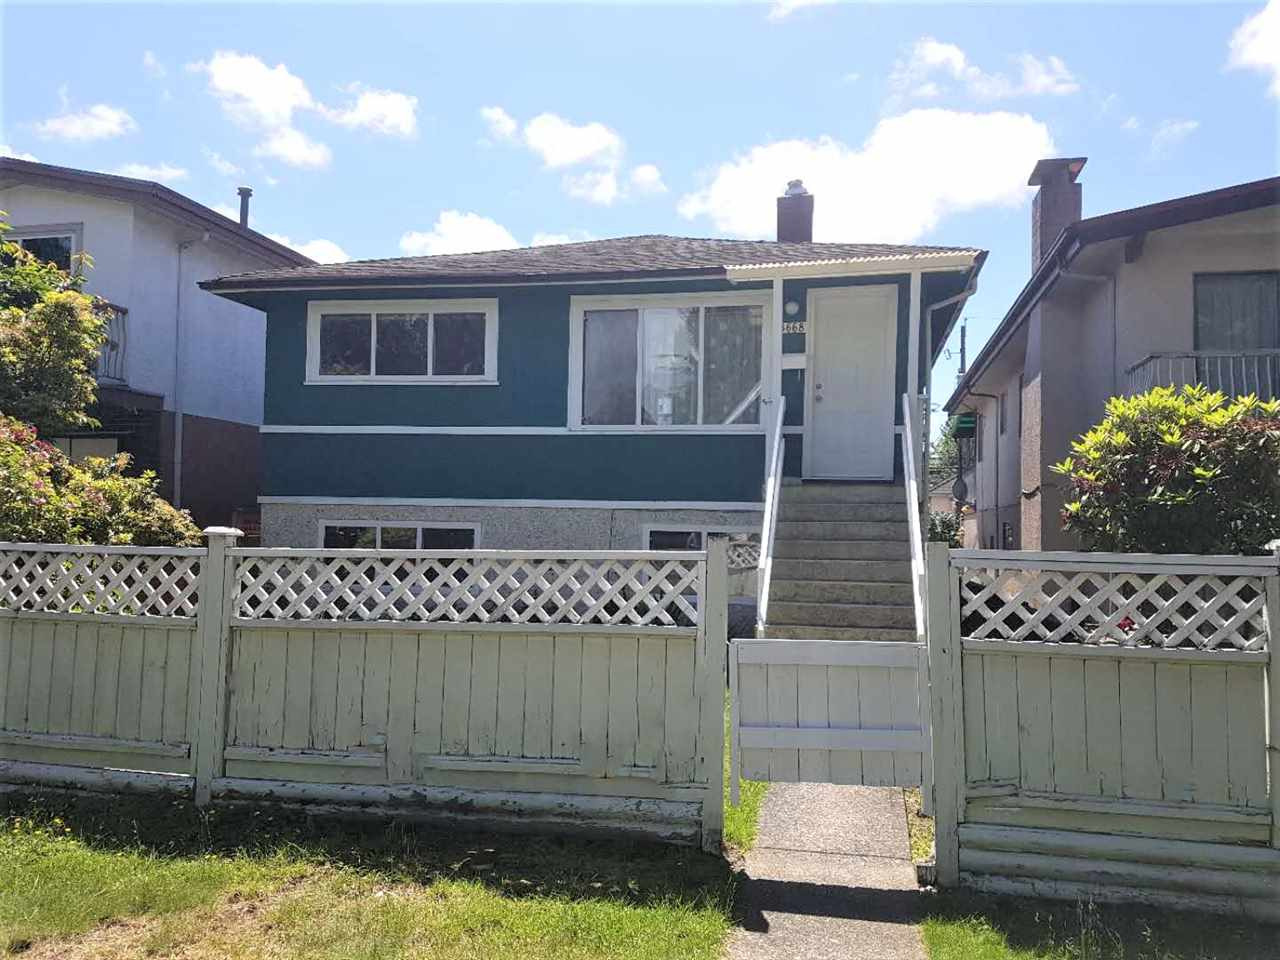 3668 NAPIER STREET - Renfrew VE House/Single Family for sale, 4 Bedrooms (R2461557)